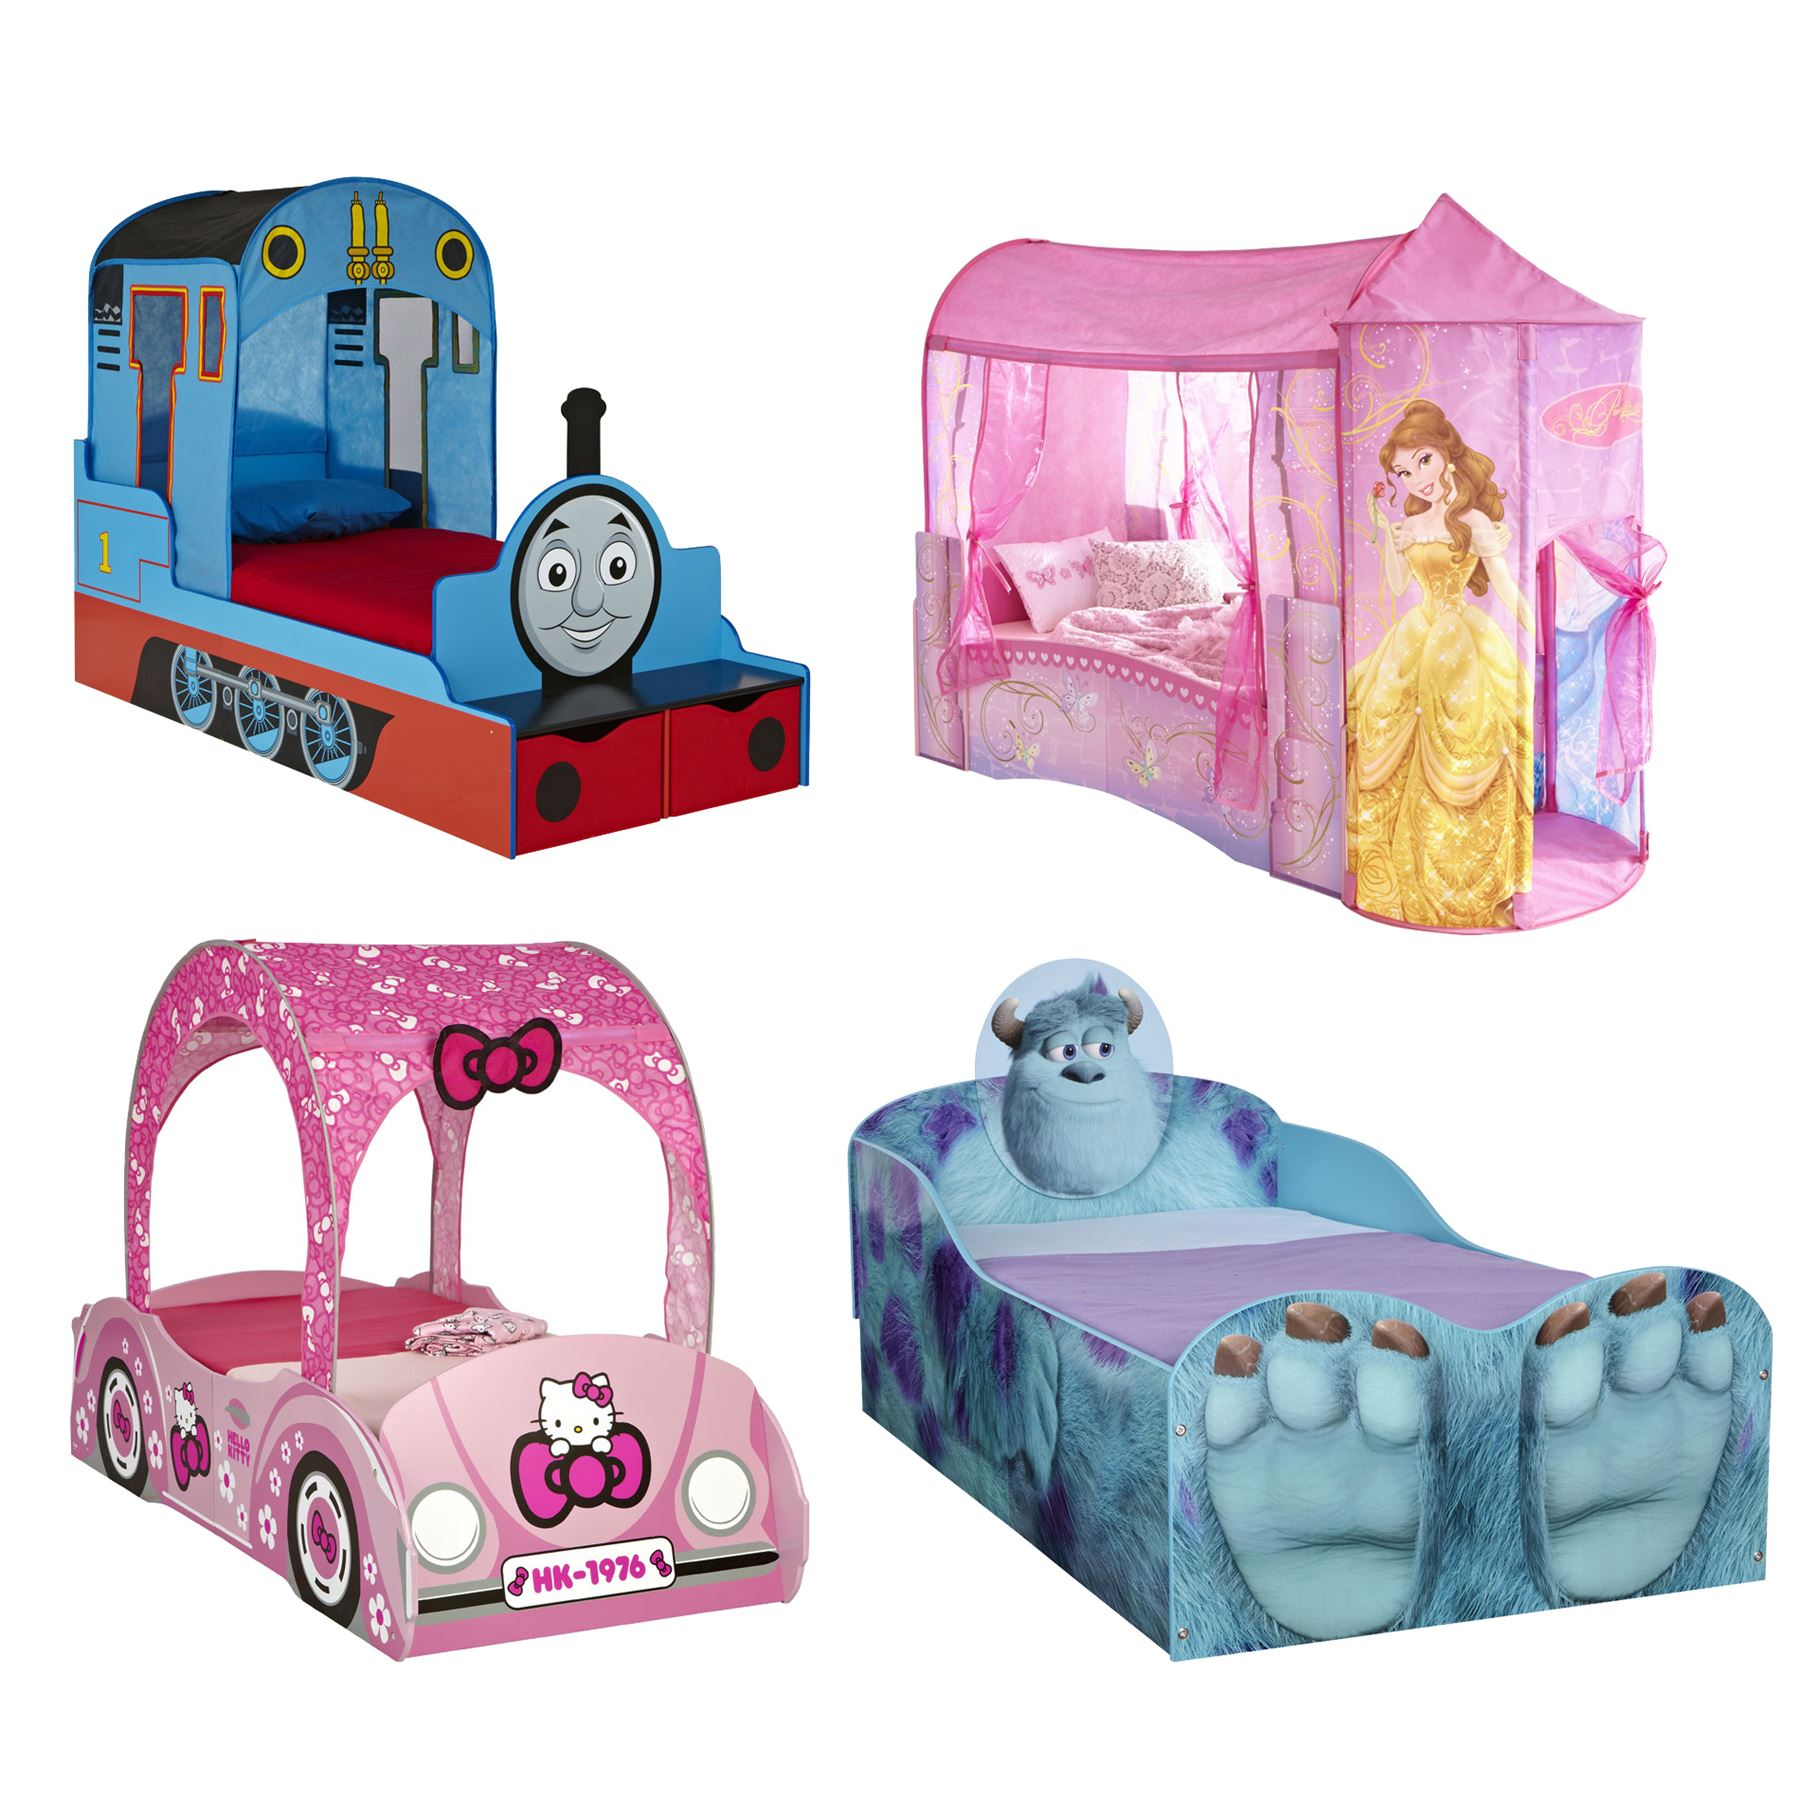 Cartoon Character Beds For Toddlers